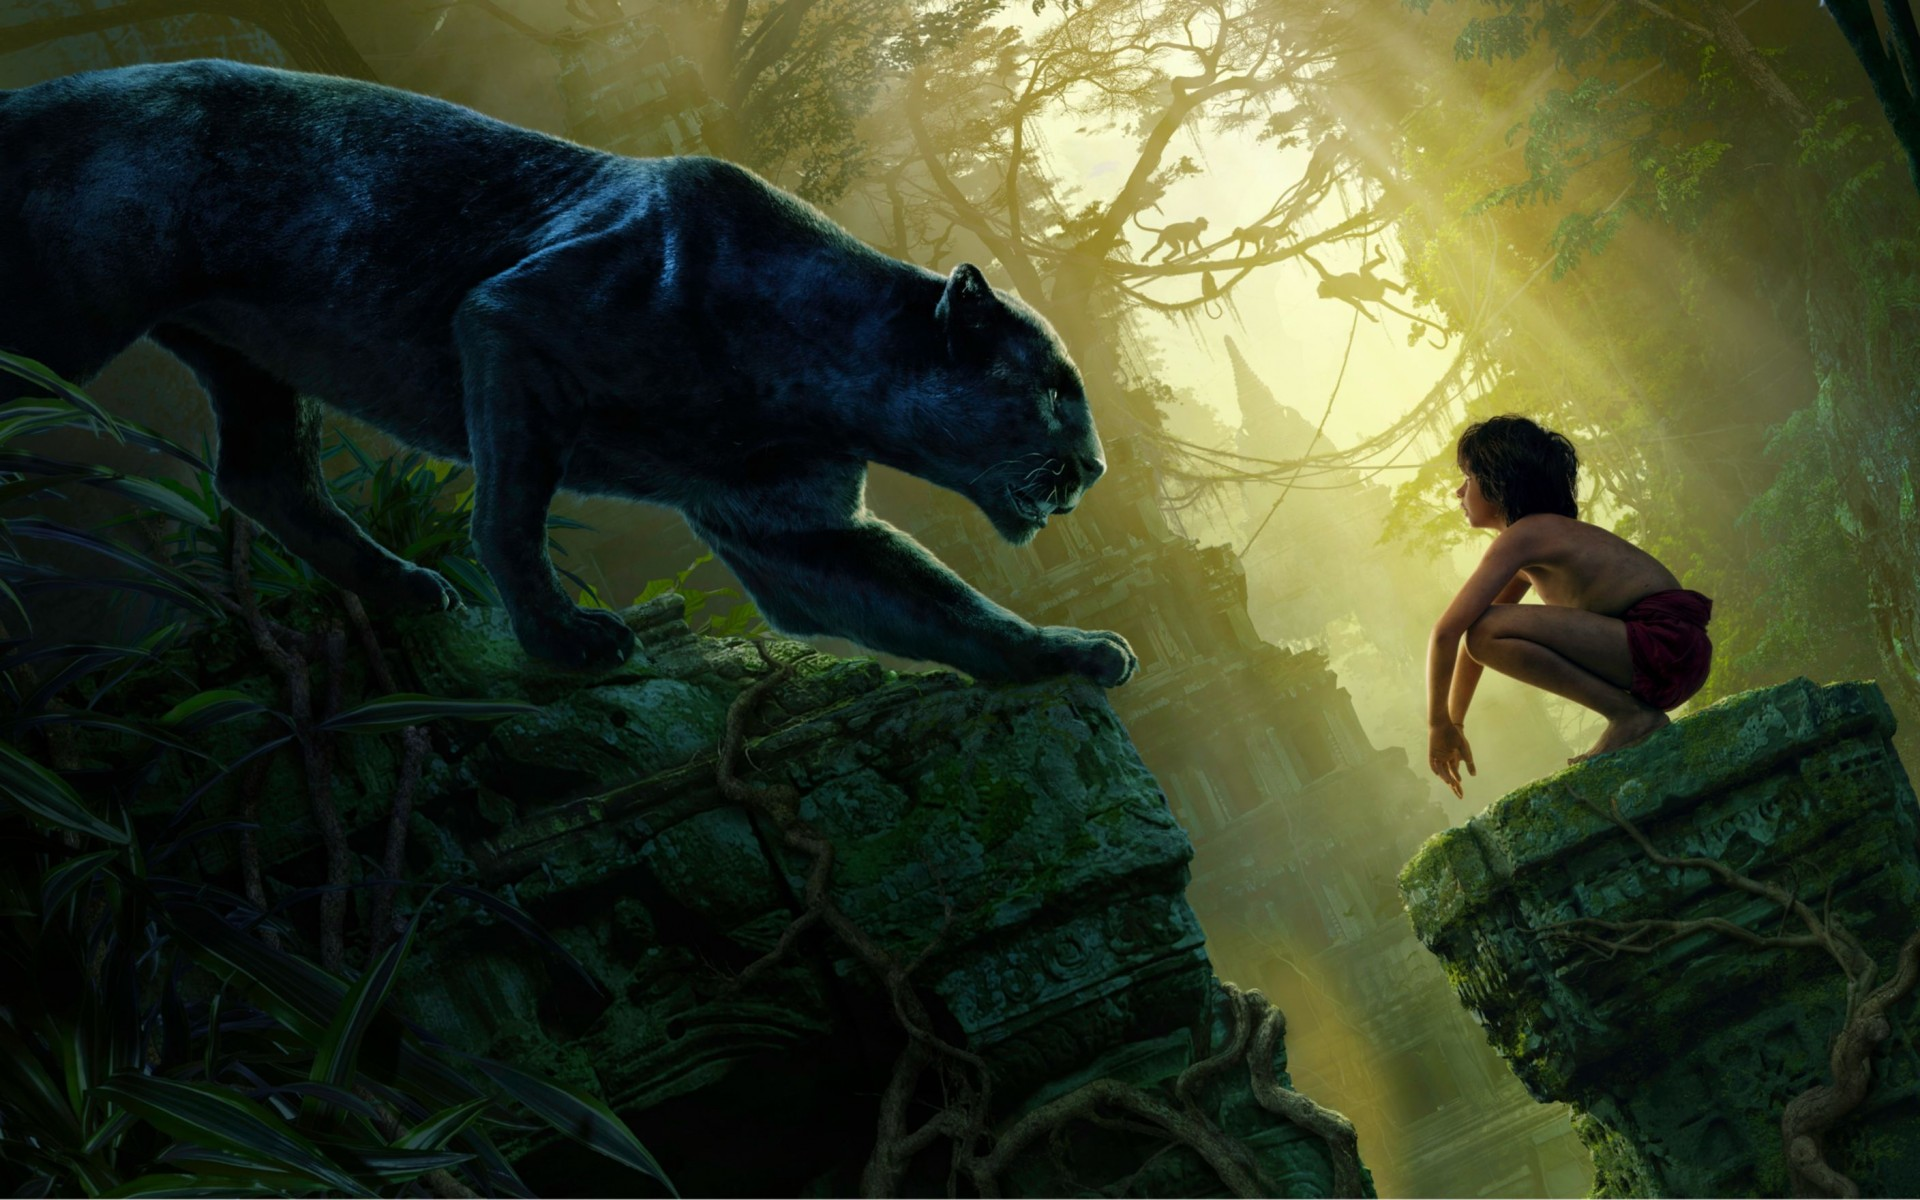 Mowgli Bagheera Black Panther The Jungle Book Wide Wallpaper